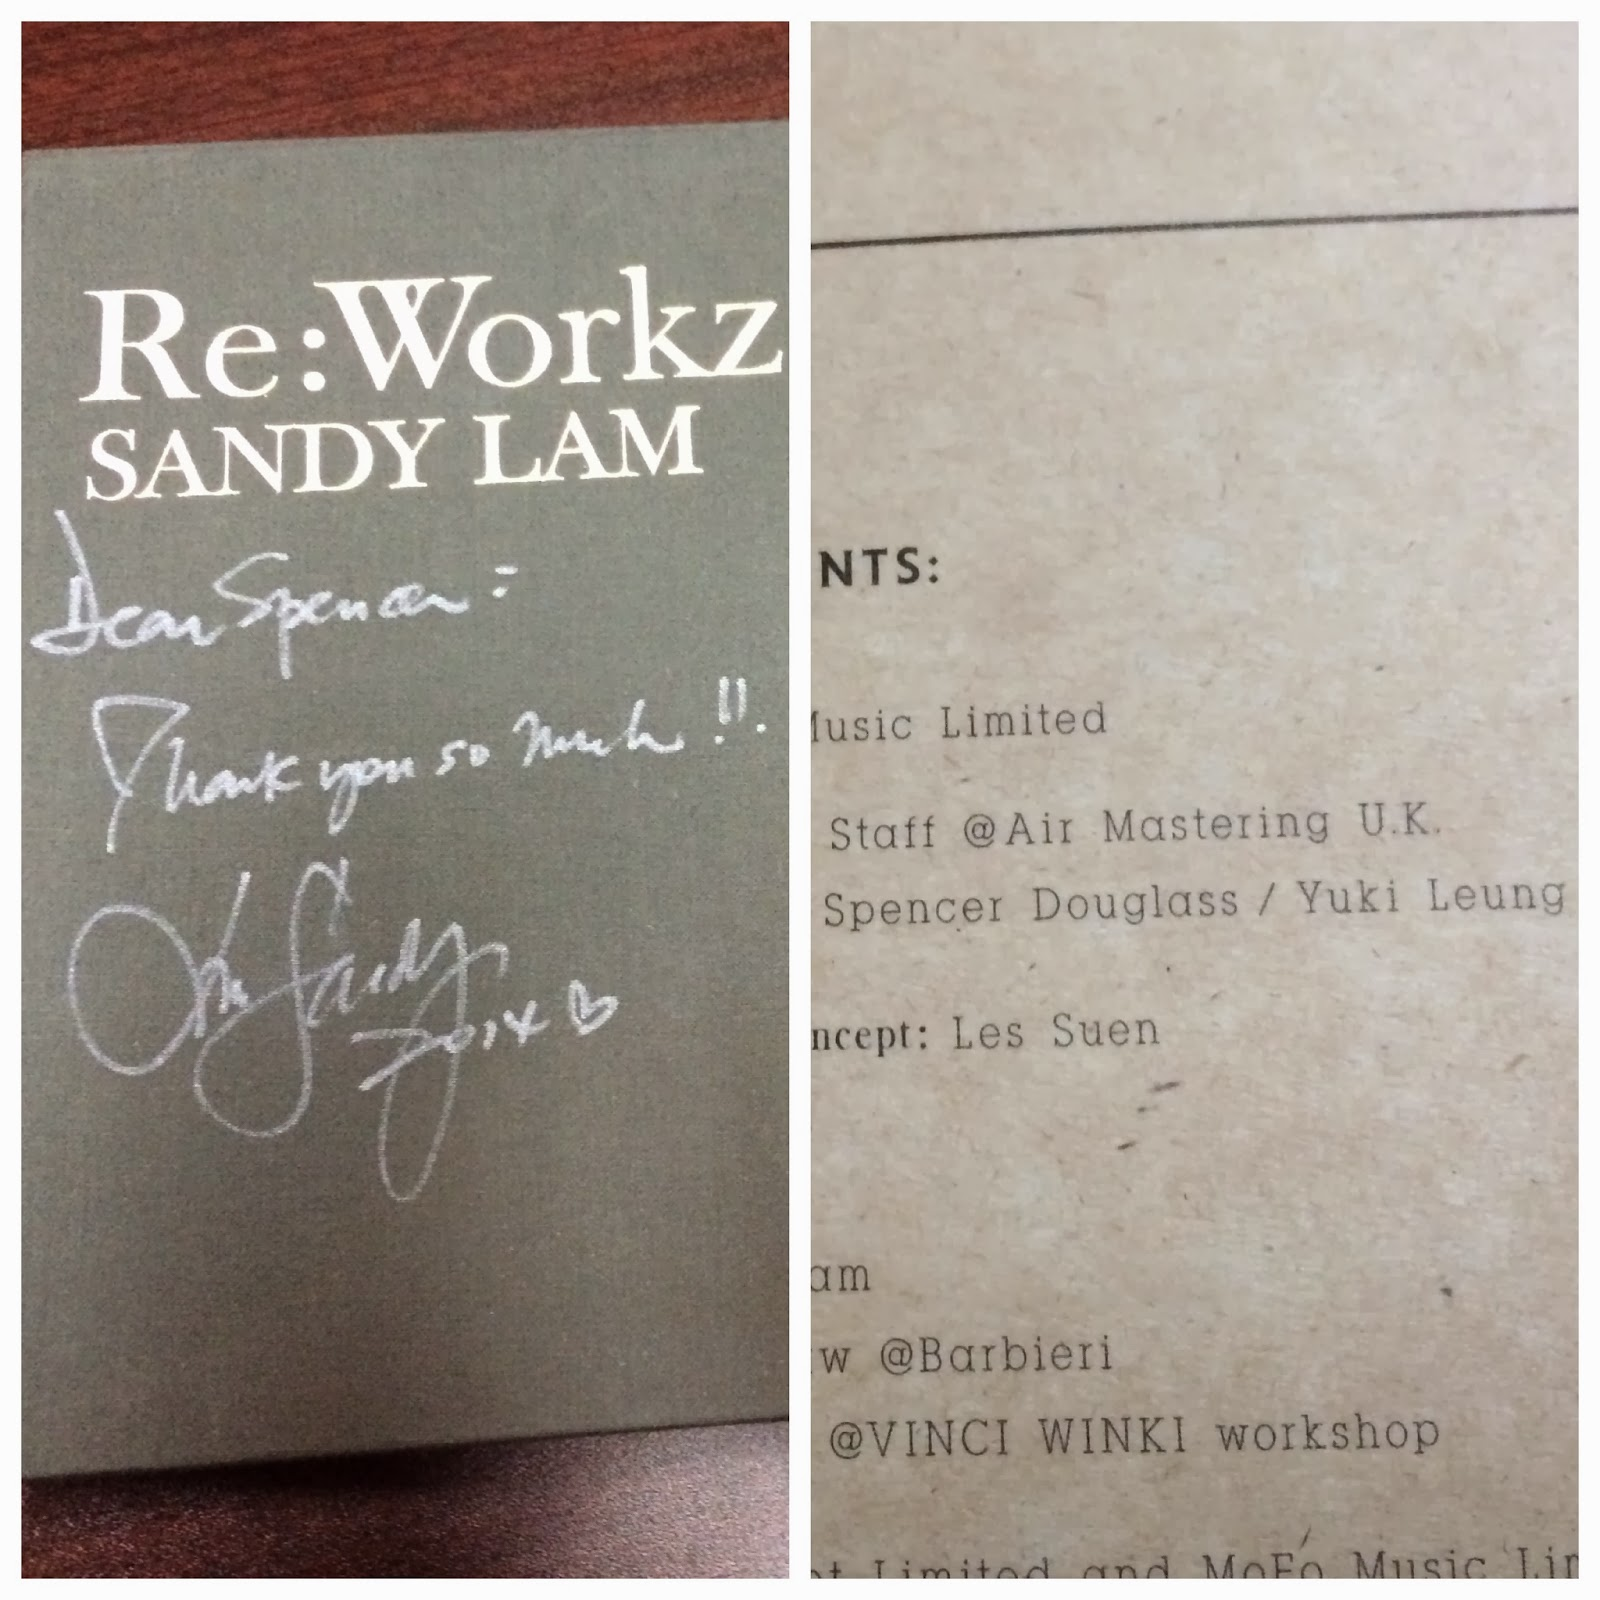 Spencer Douglass credit as Project Manager on Sandy Lam 林憶蓮 album Re:Workz